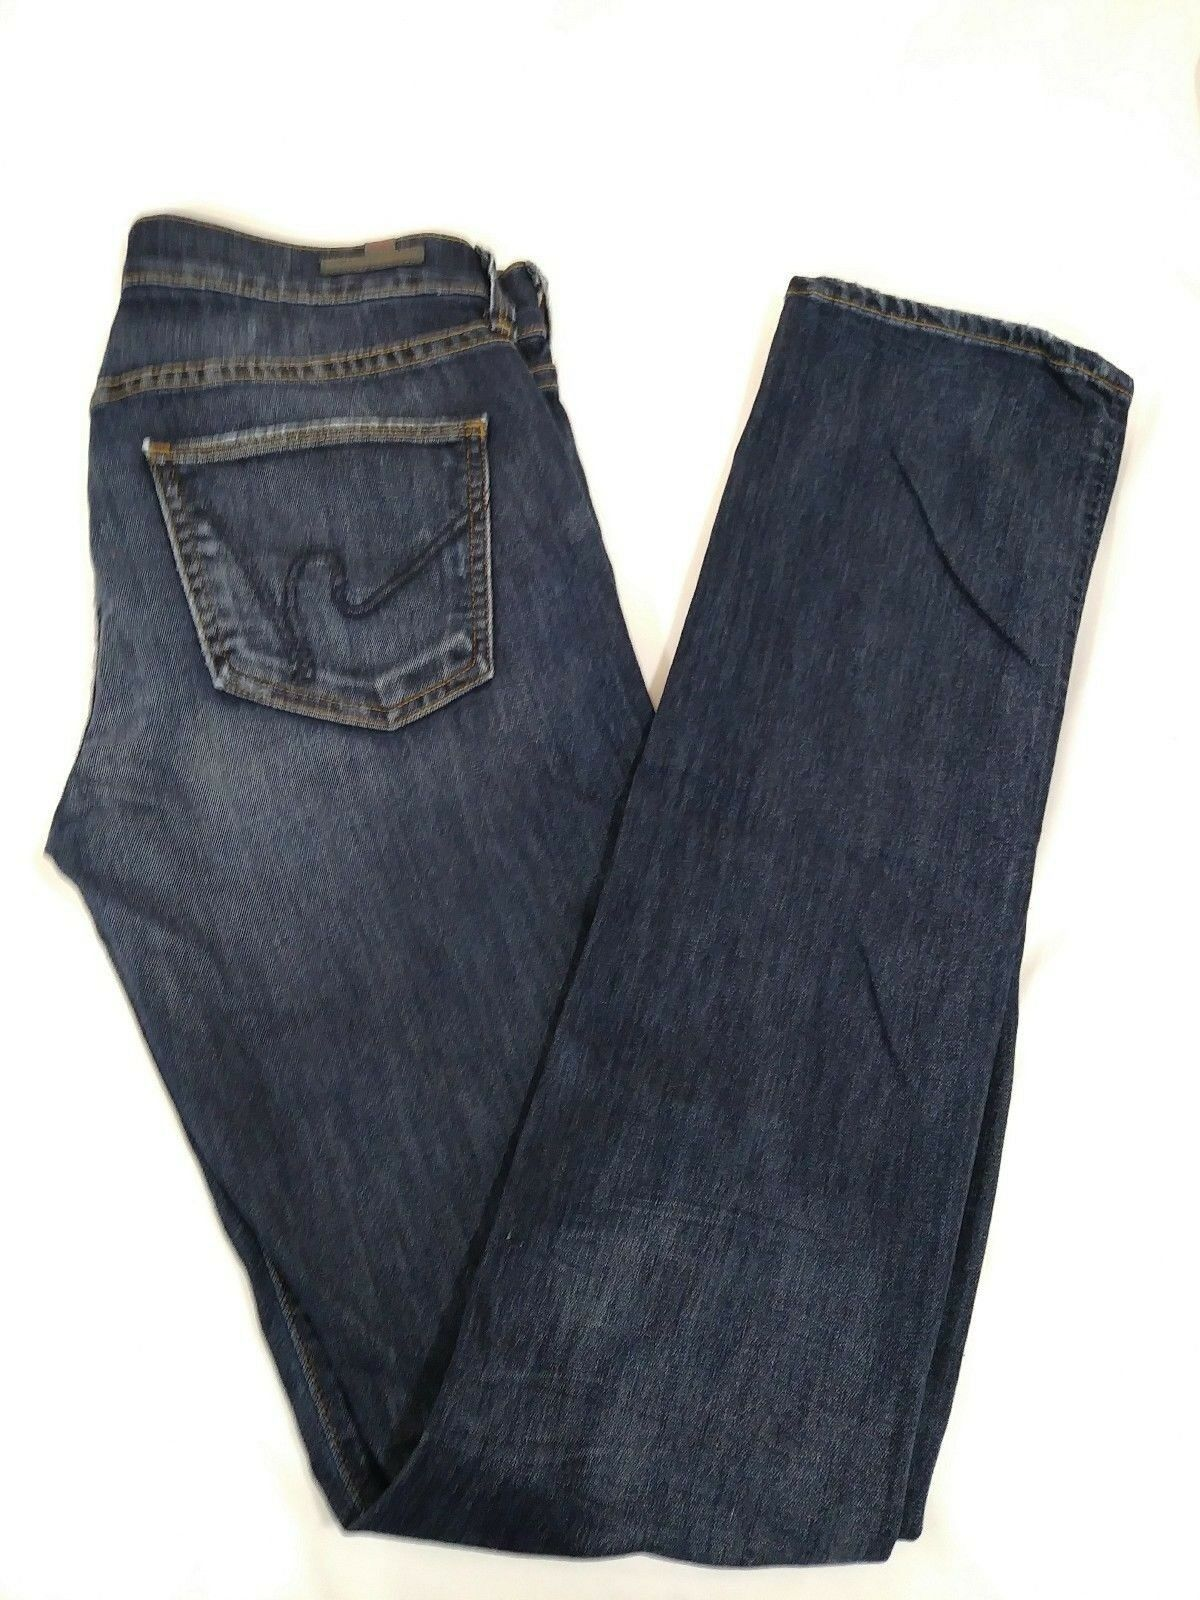 CITIZENS OF HUMANITY Elson 27 Stretch Denim Straight Leg  178 Retail